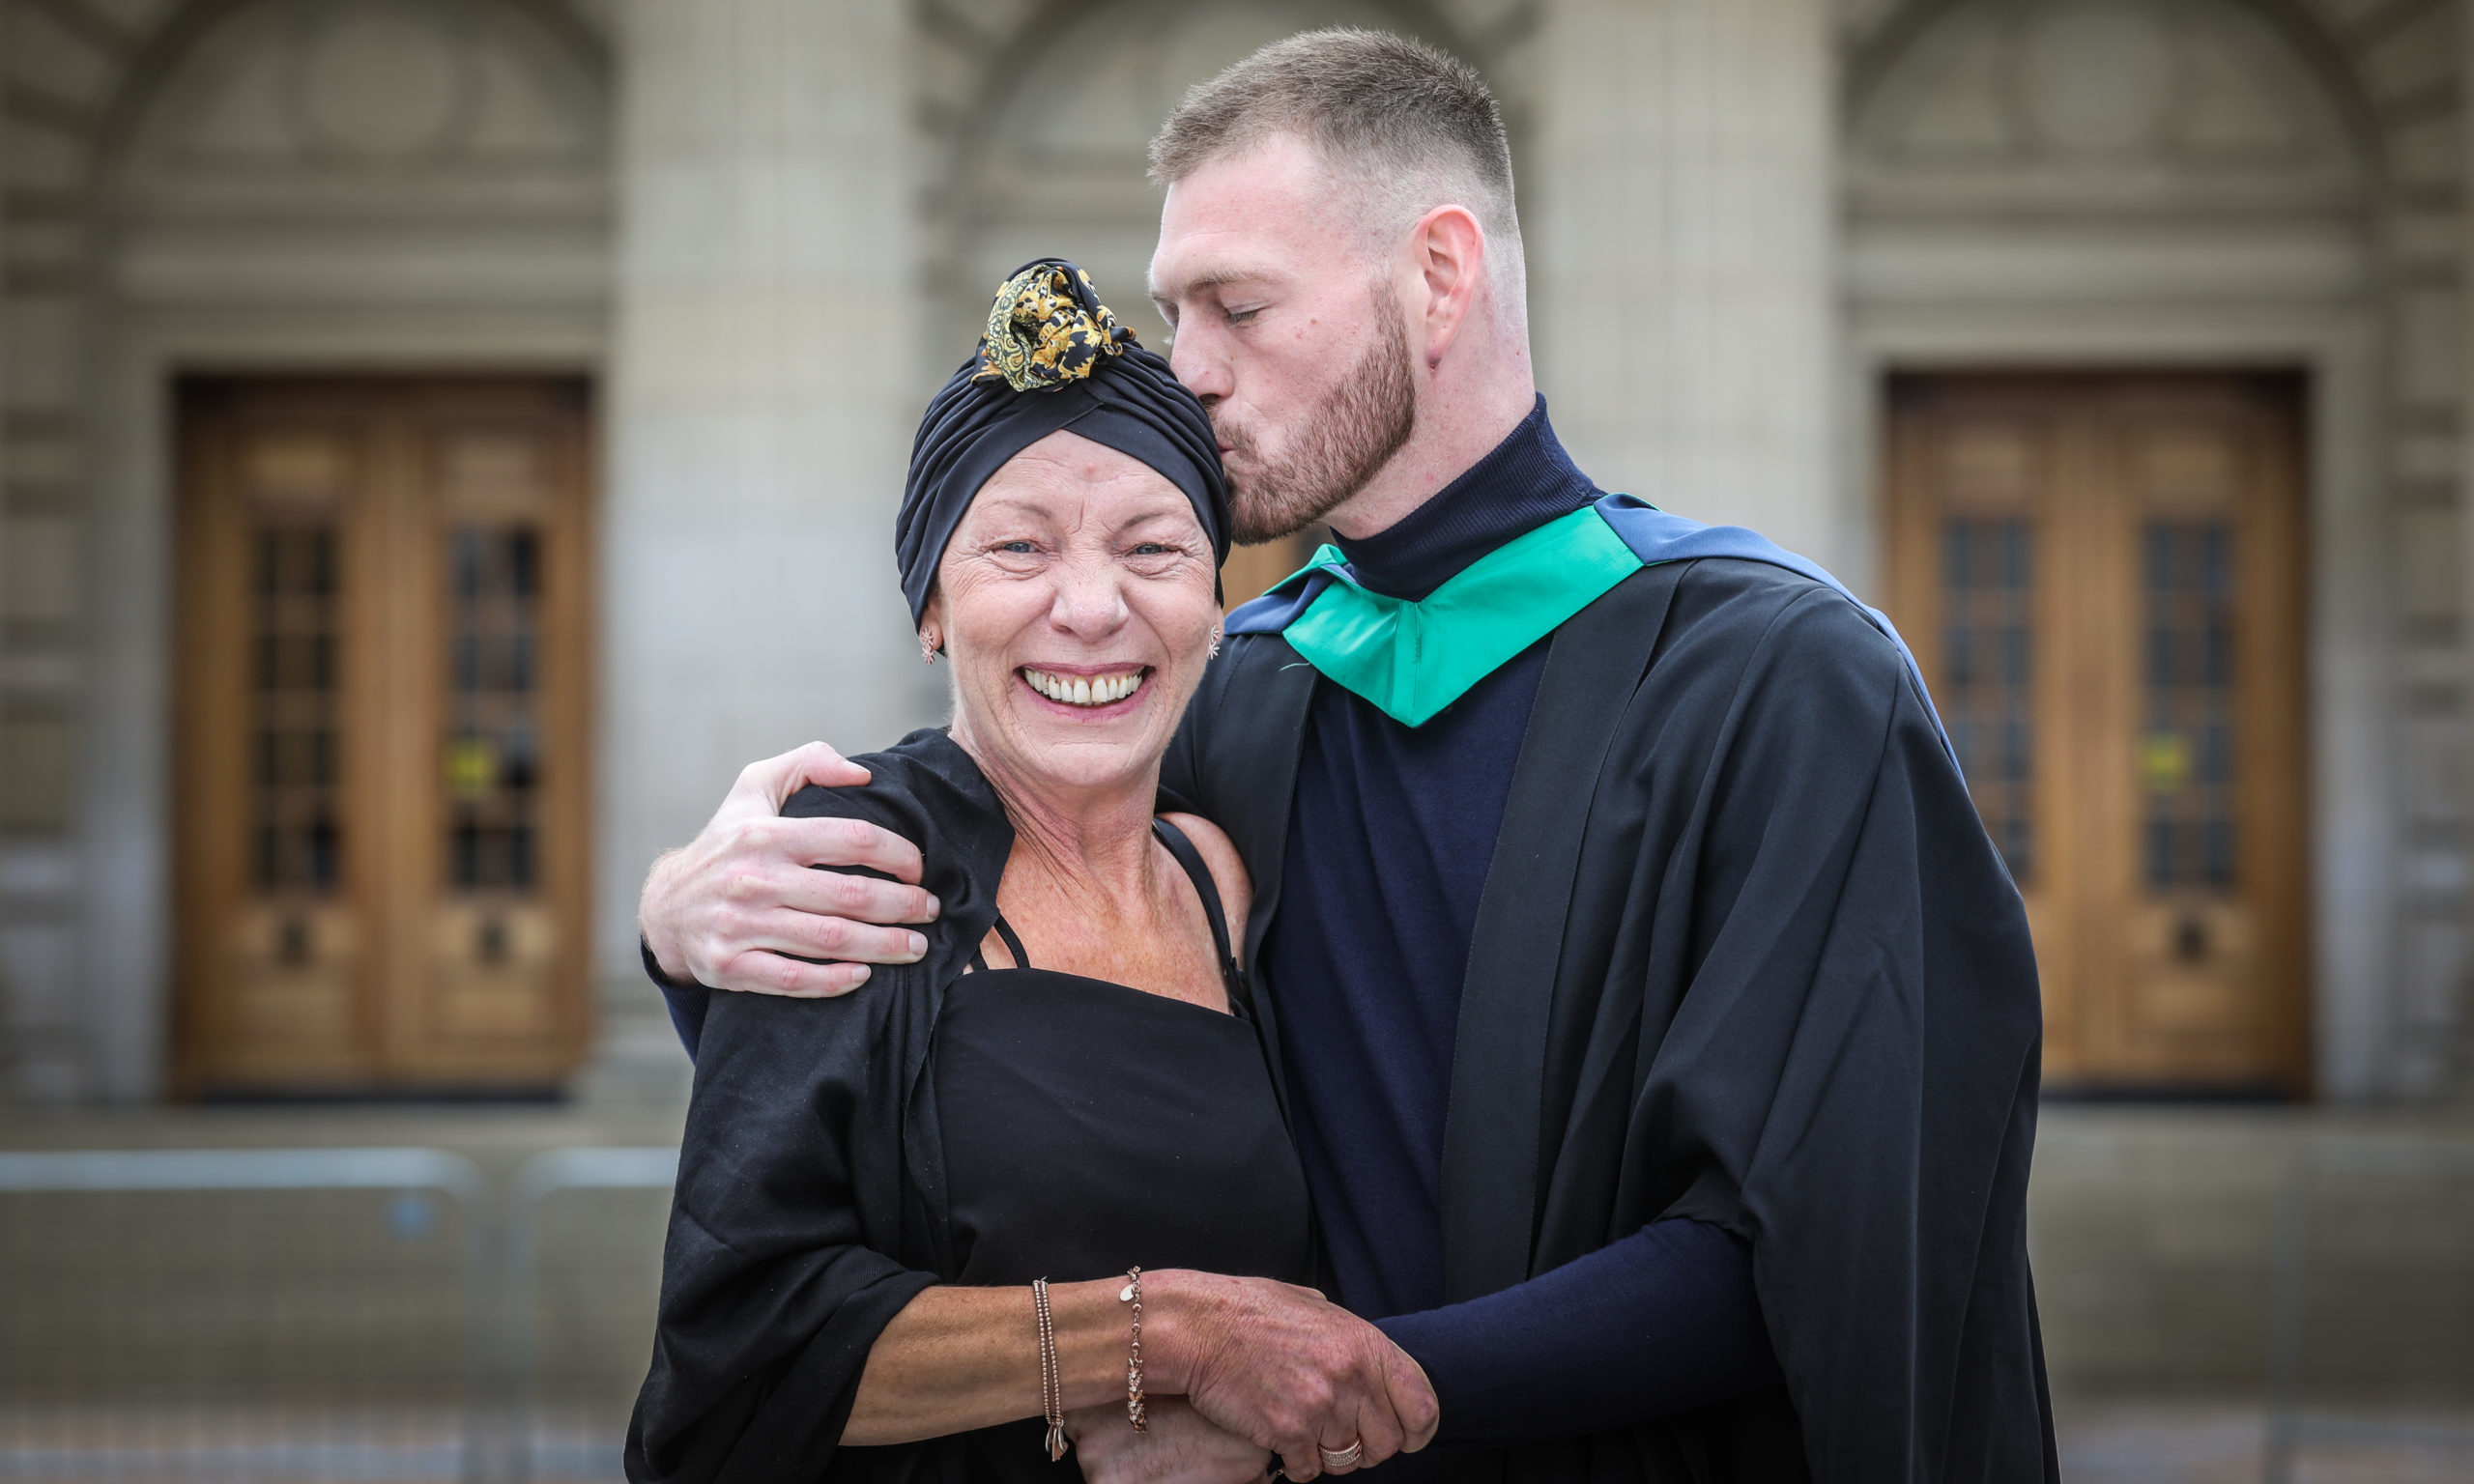 Matilda Latronico with son Sam Latronico, 27, from Perth who graduated in Ethnical Hacking. Mhairi Edwards/DCT Media